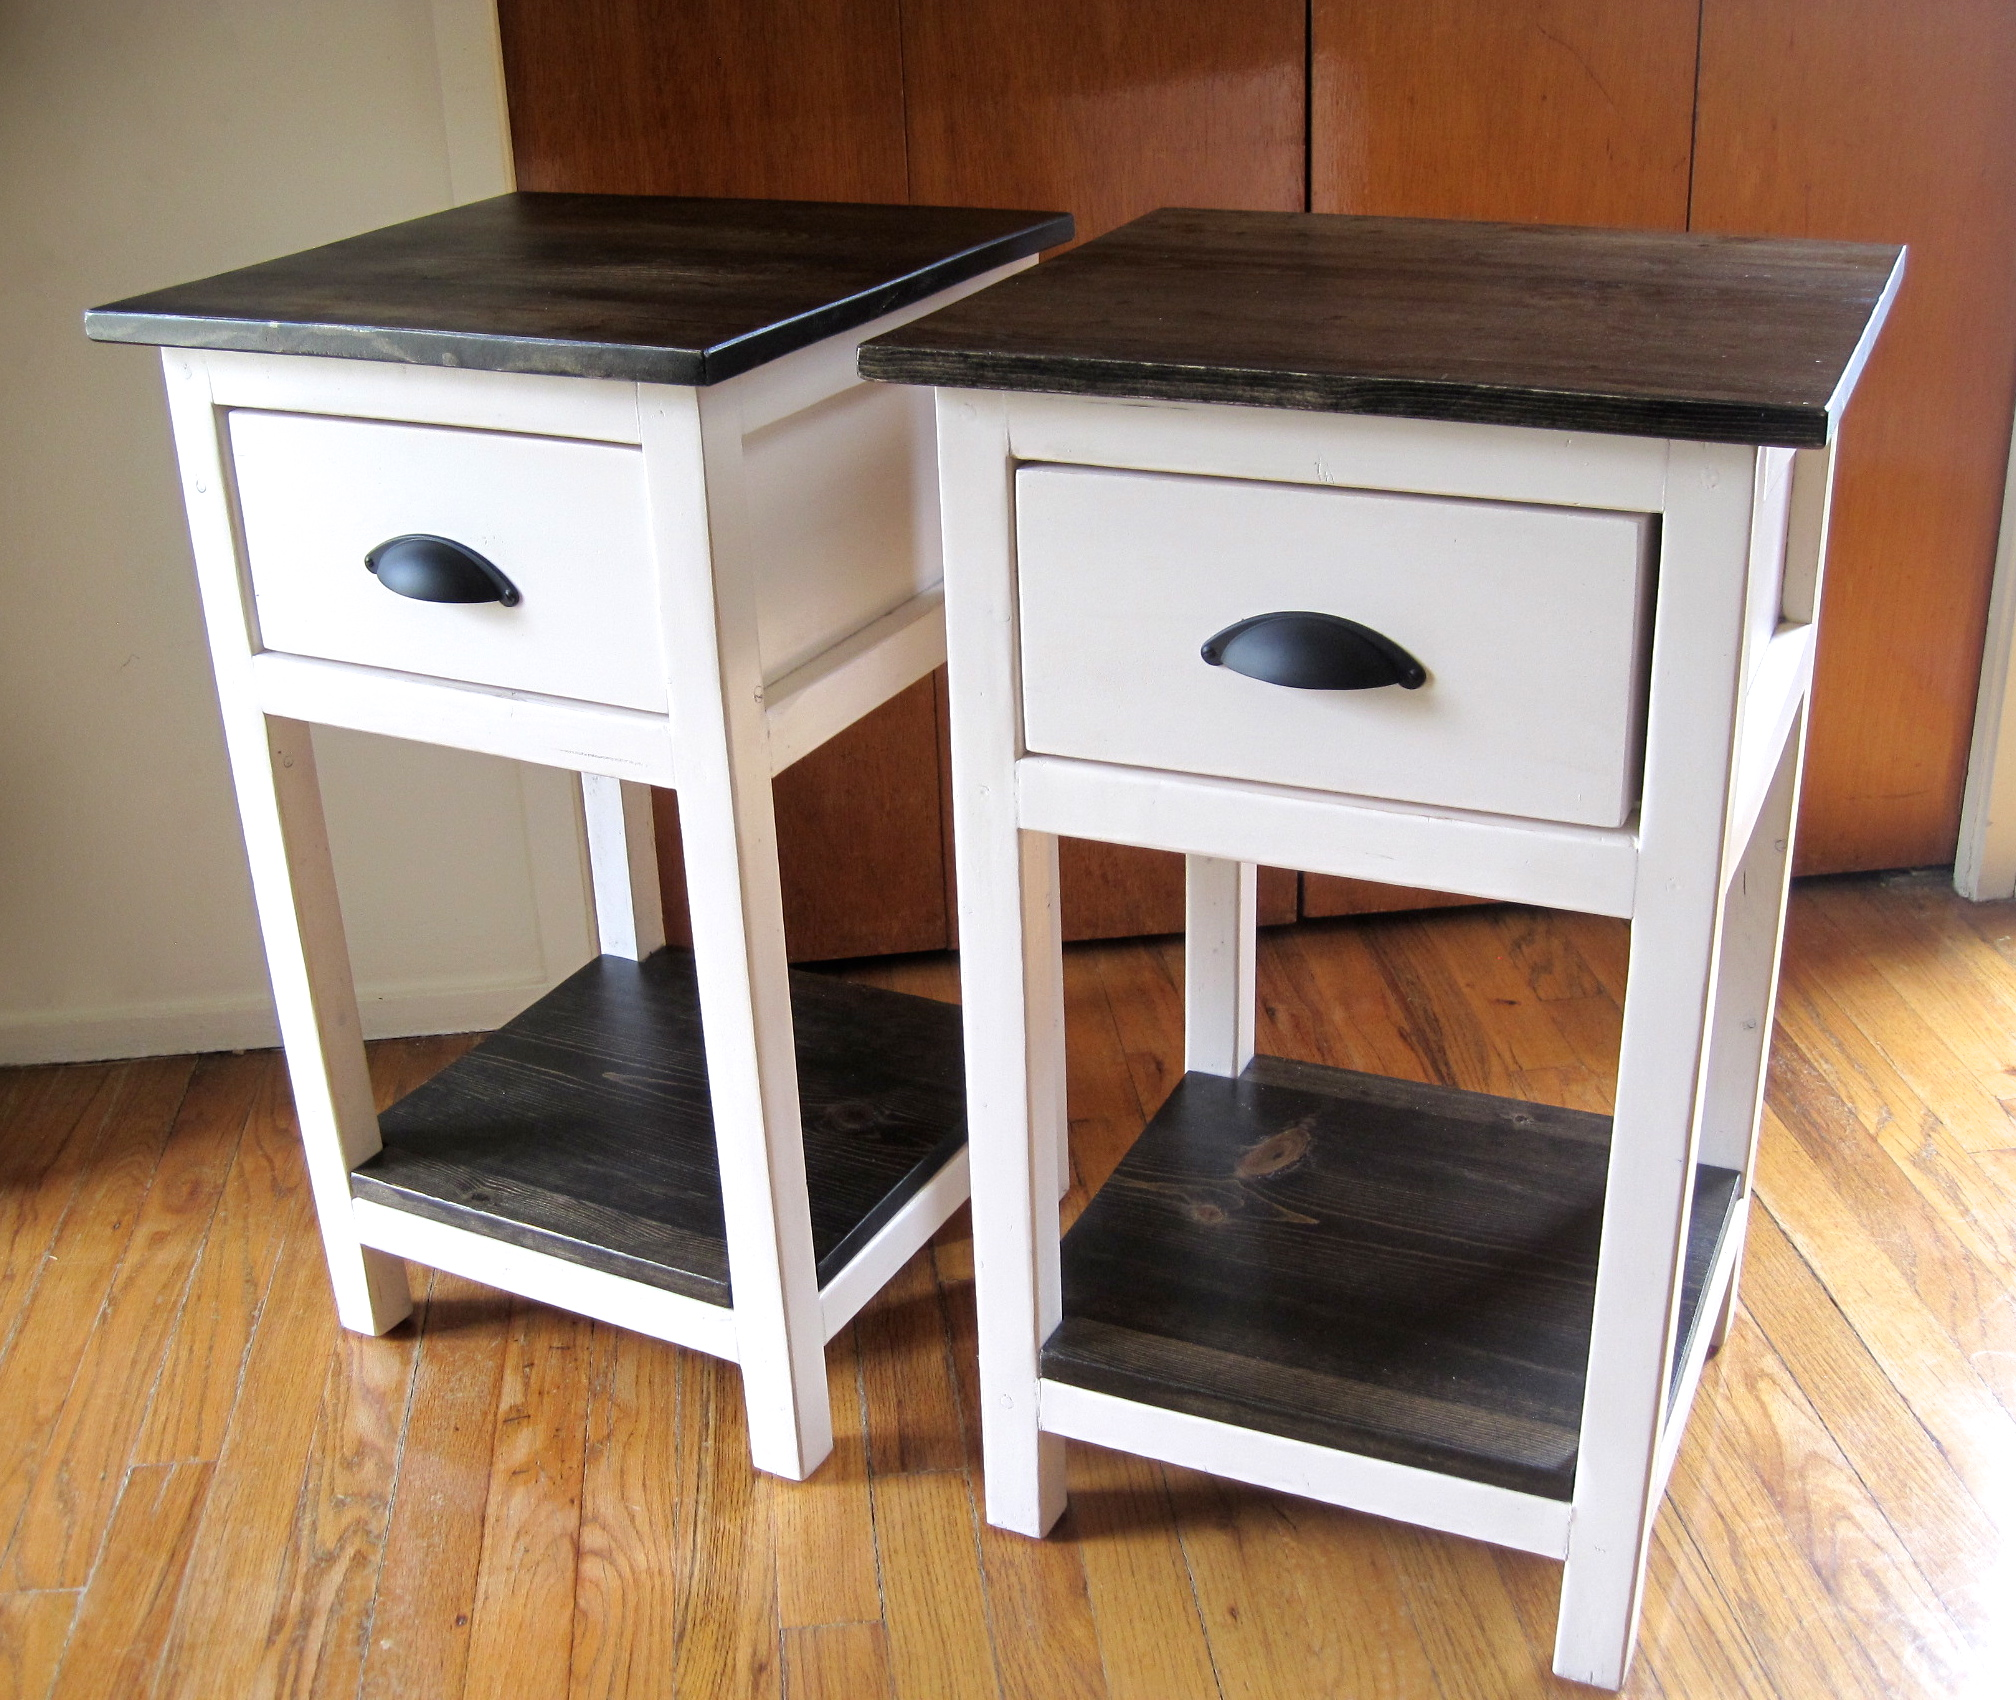 ana white mini farmhouse bedside table diy projects small accent banquet round oak wall mounted console smoked glass end tables large patio umbrella cylinder lamp cocktail dark